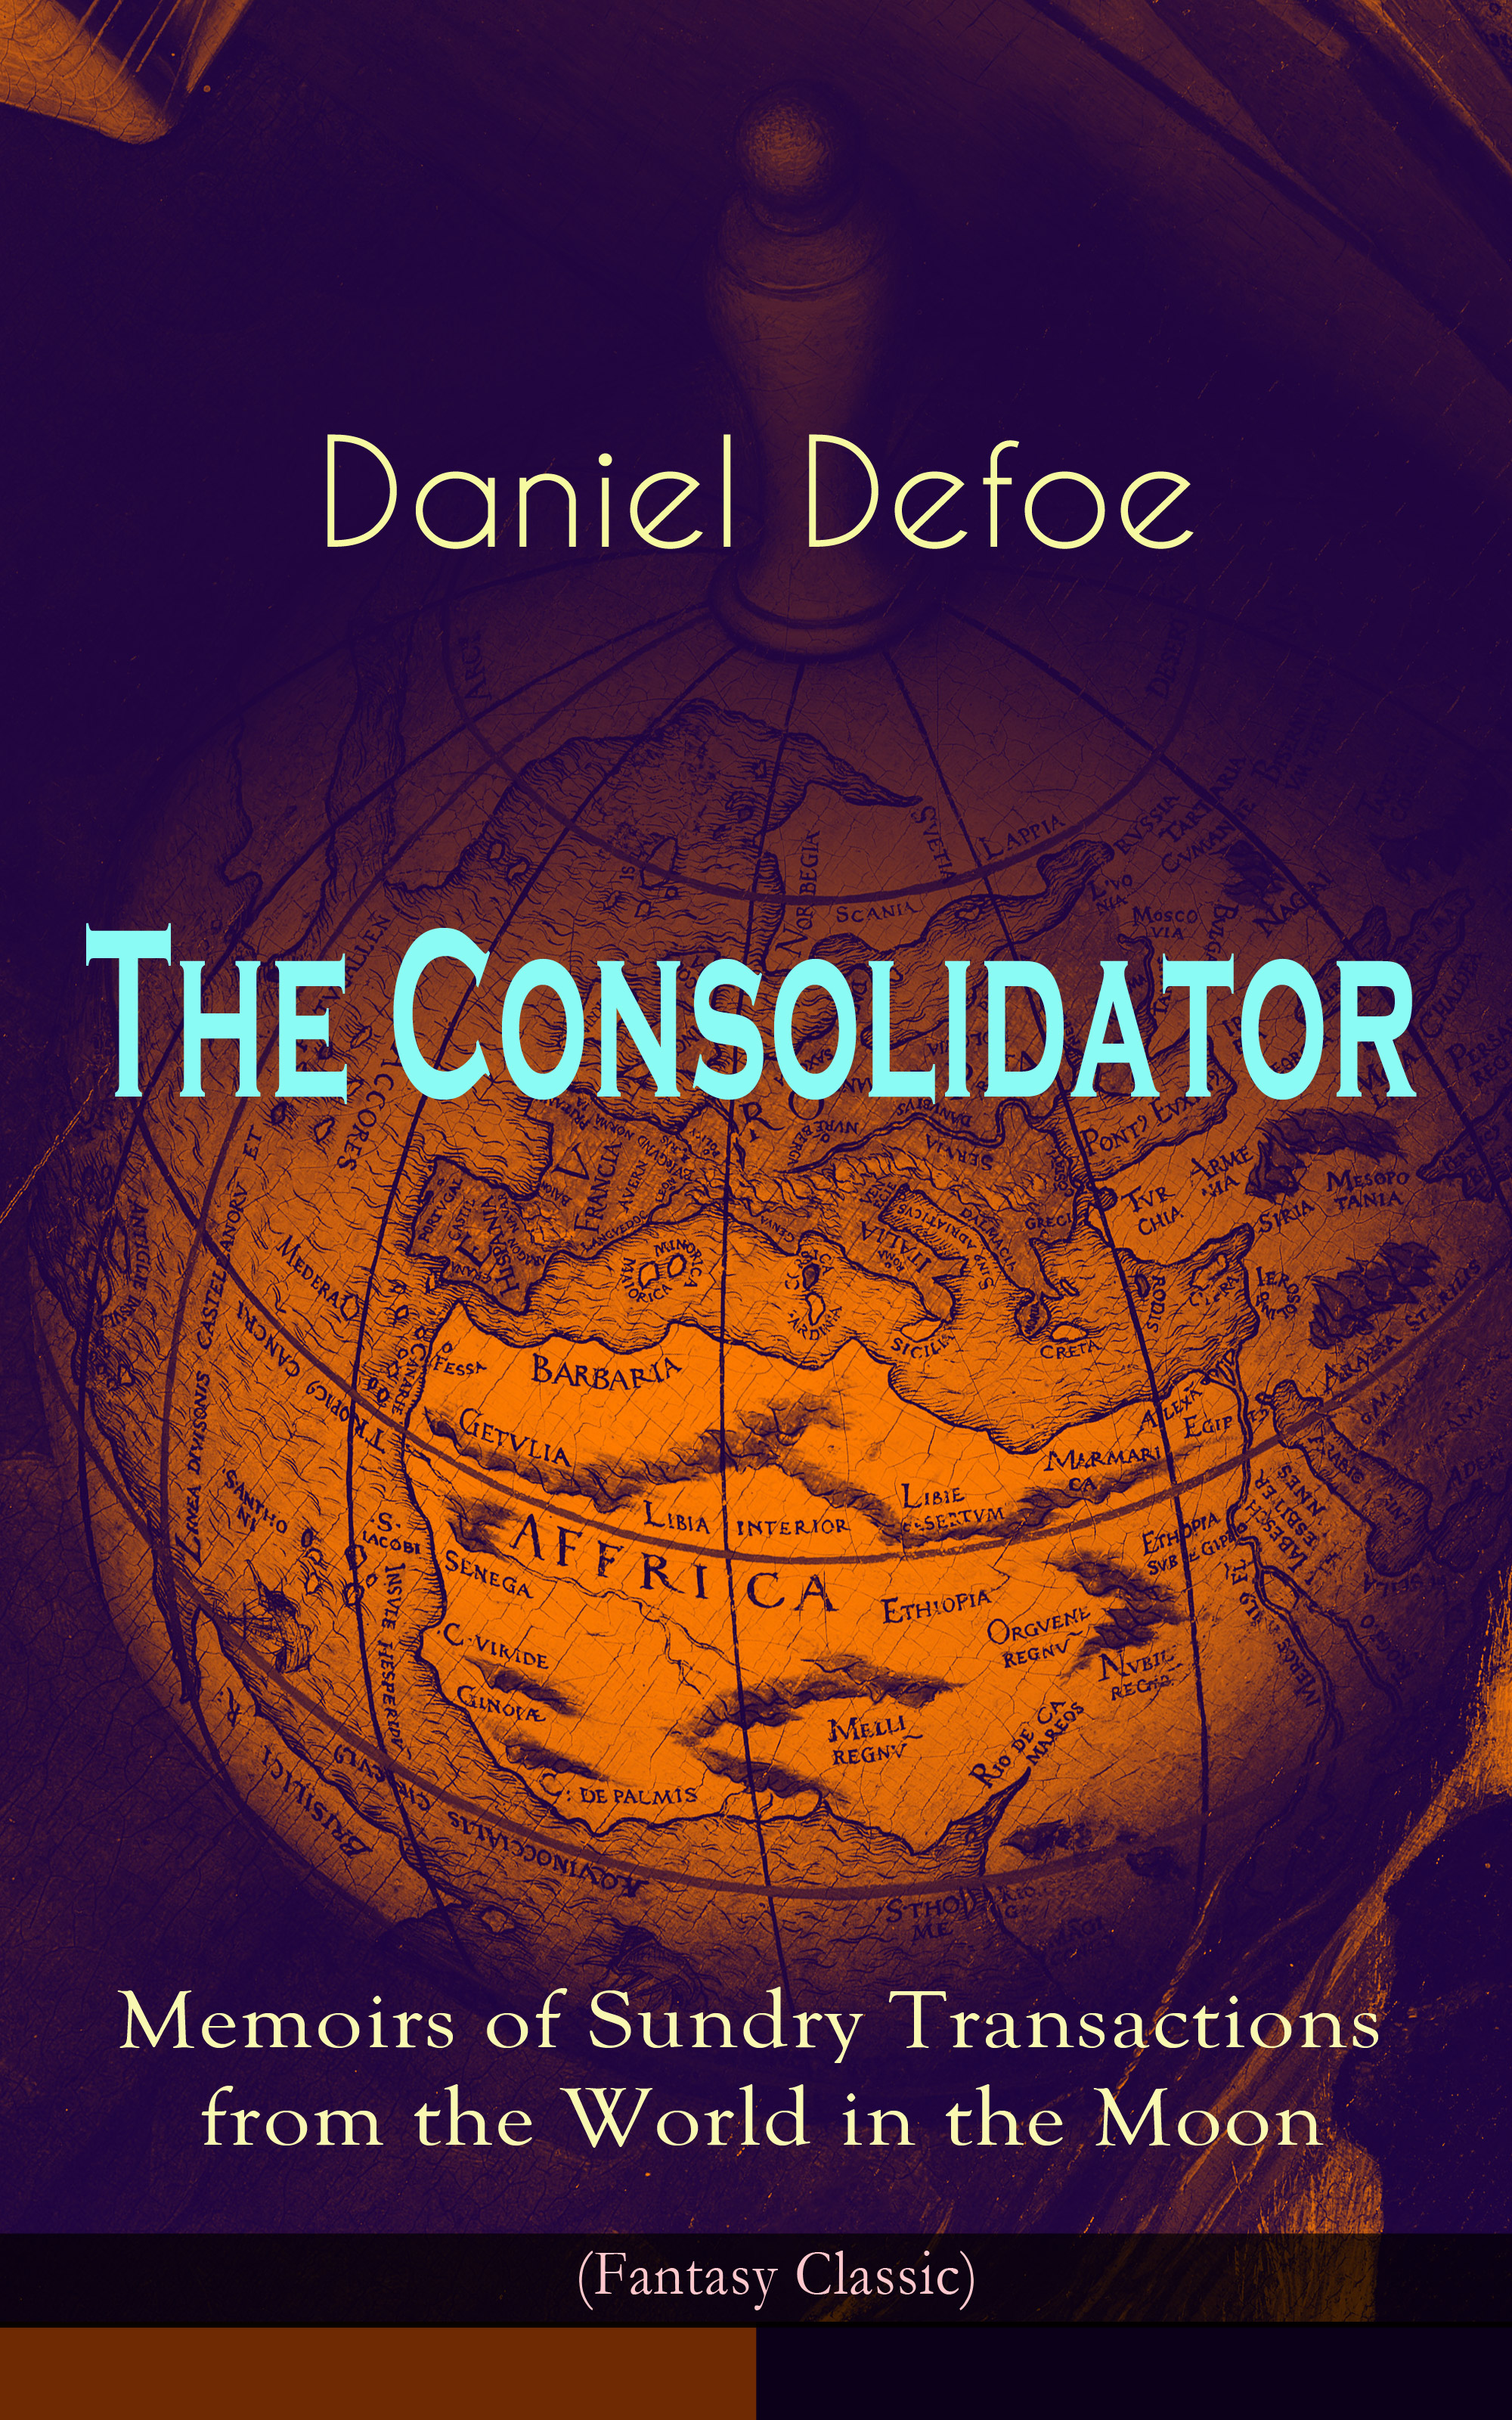 The Consolidator - Memoirs of Sundry Transactions from the World in the Moon (Fantasy Classic)